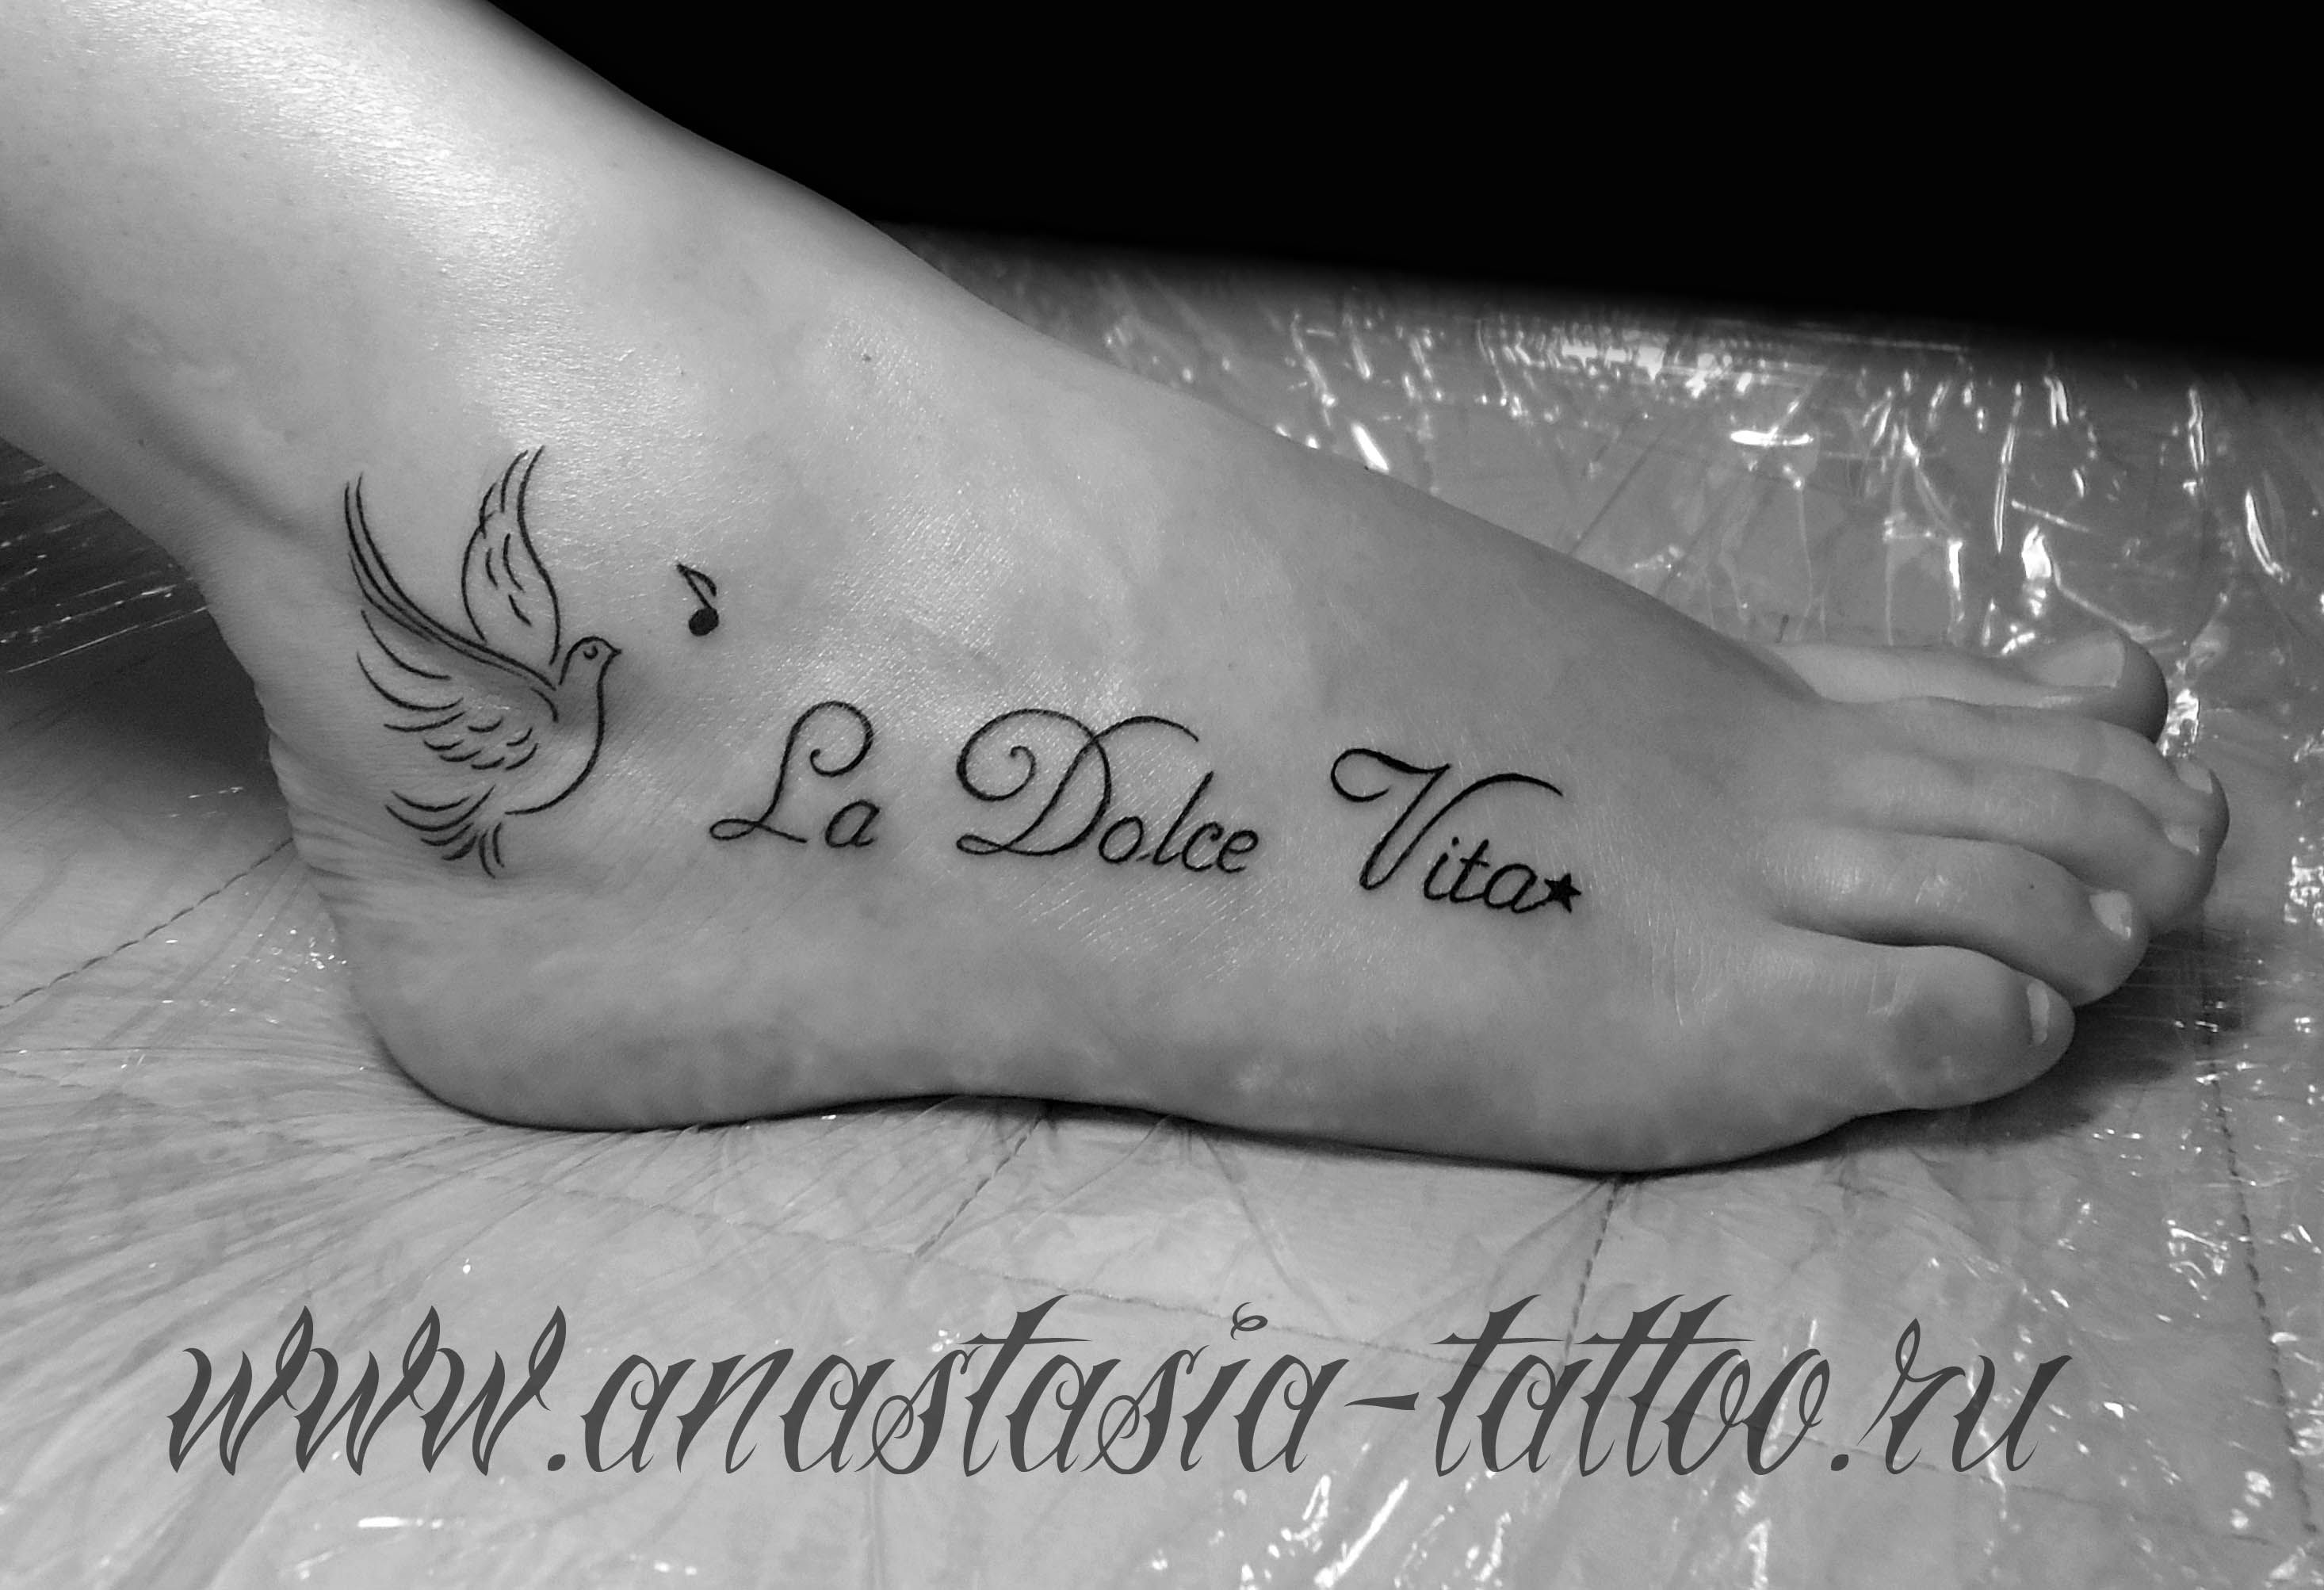 La Dolce Vita The Sweet Life Love This Minus The Ideas And Designs